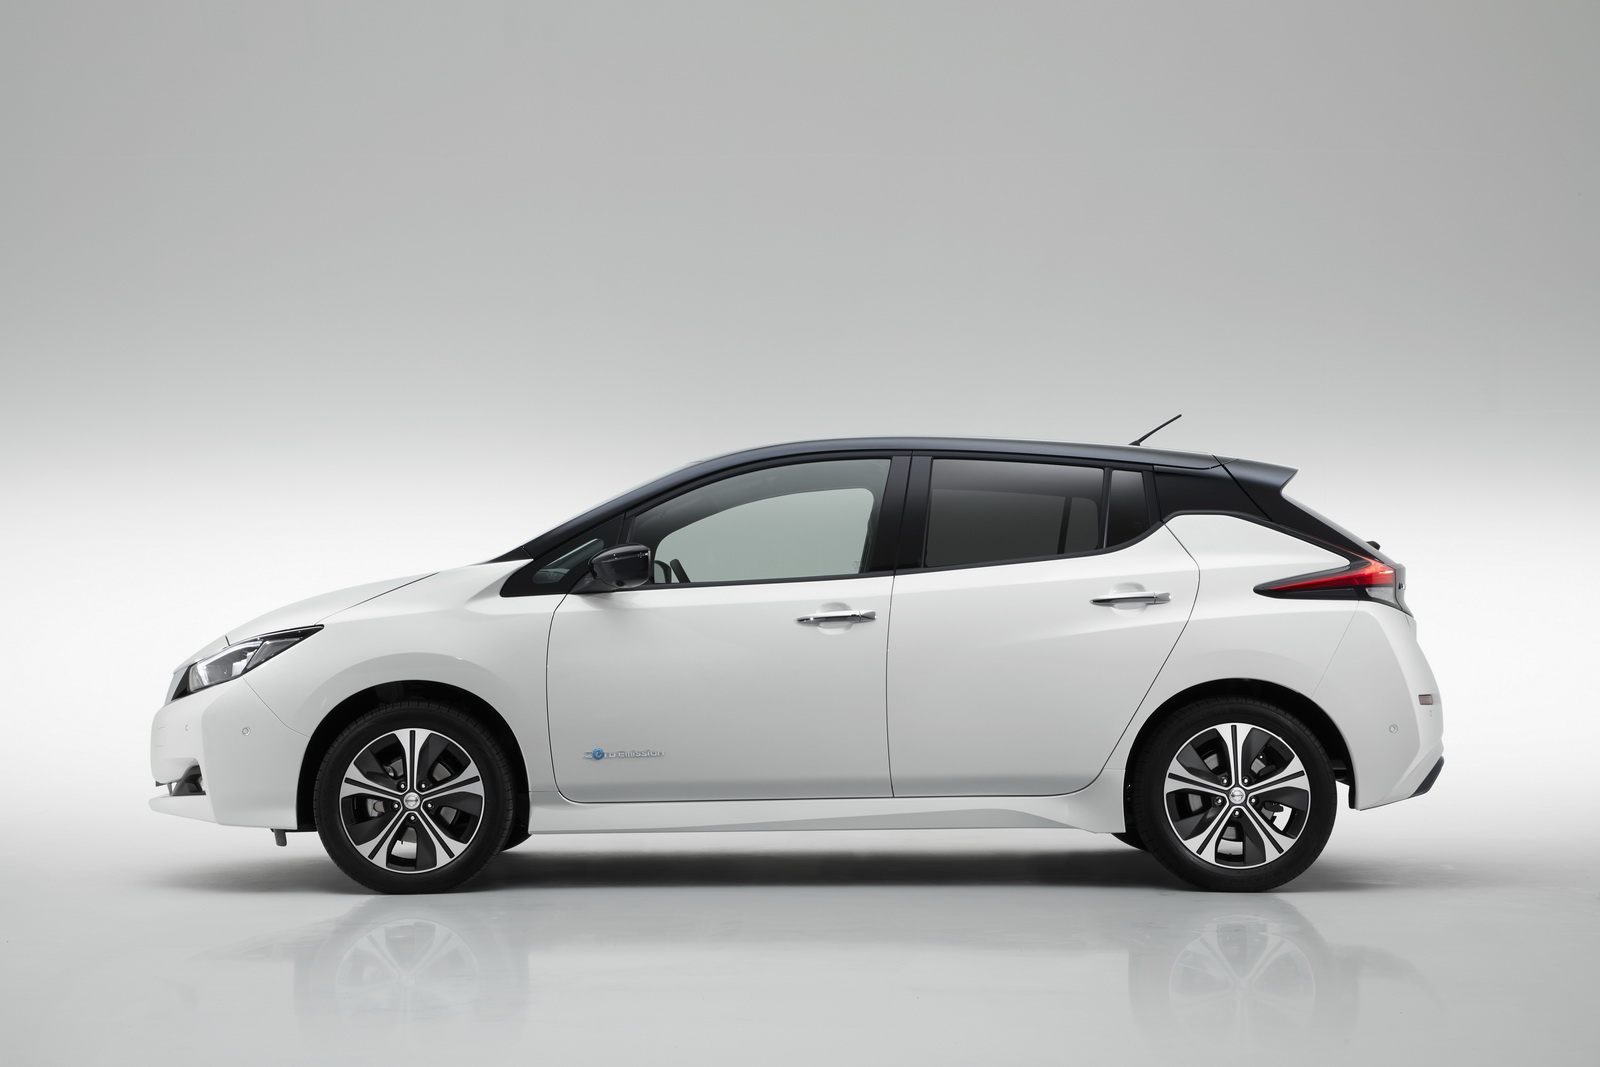 new nissan leaf officially launched in europe launch edition priced from 26 490 in the uk. Black Bedroom Furniture Sets. Home Design Ideas